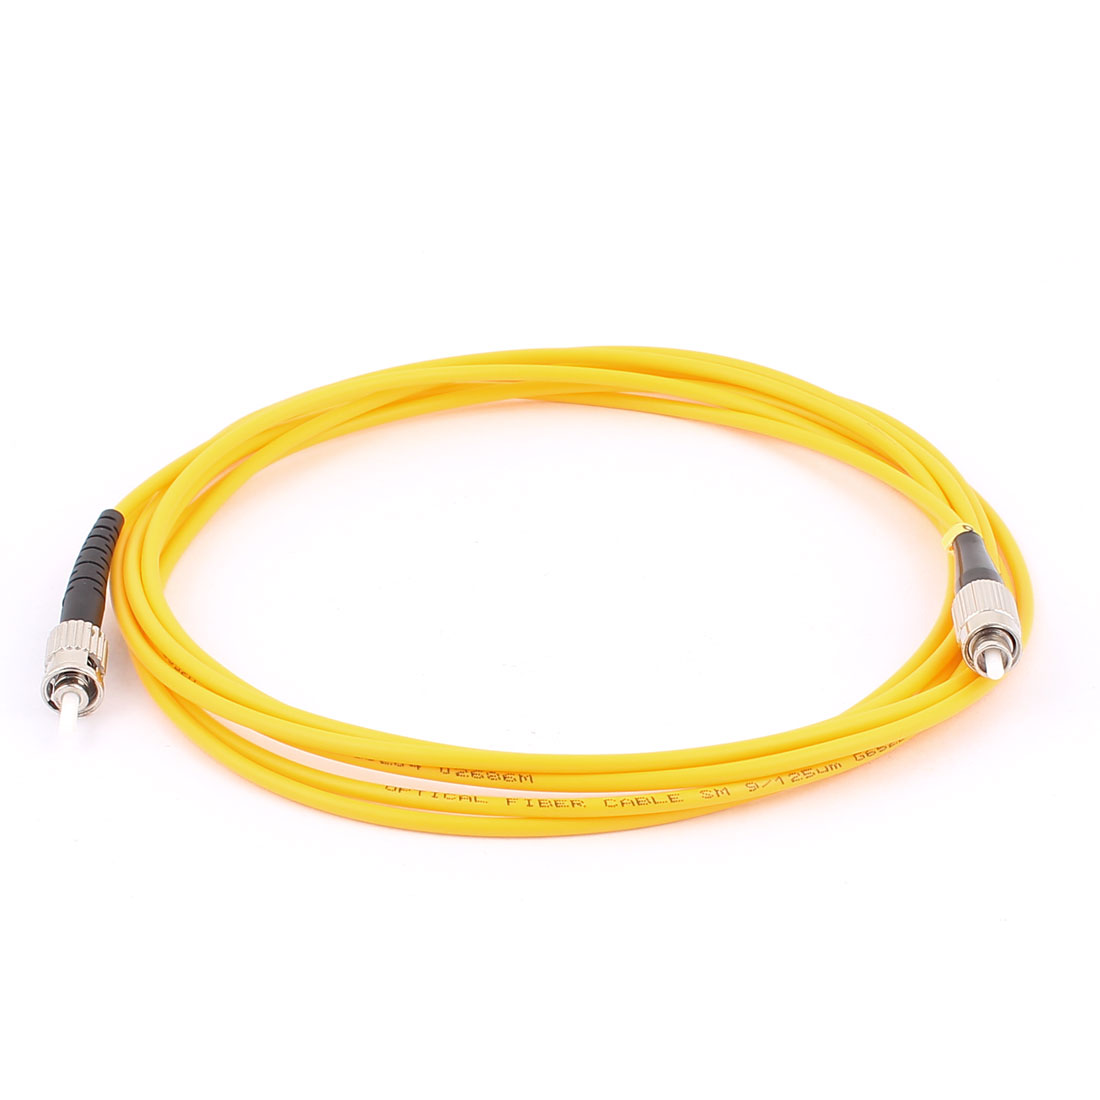 FC-ST 9/125 Simplex Singlemode Optic Fiber Optical Cable Yellow 3.0M